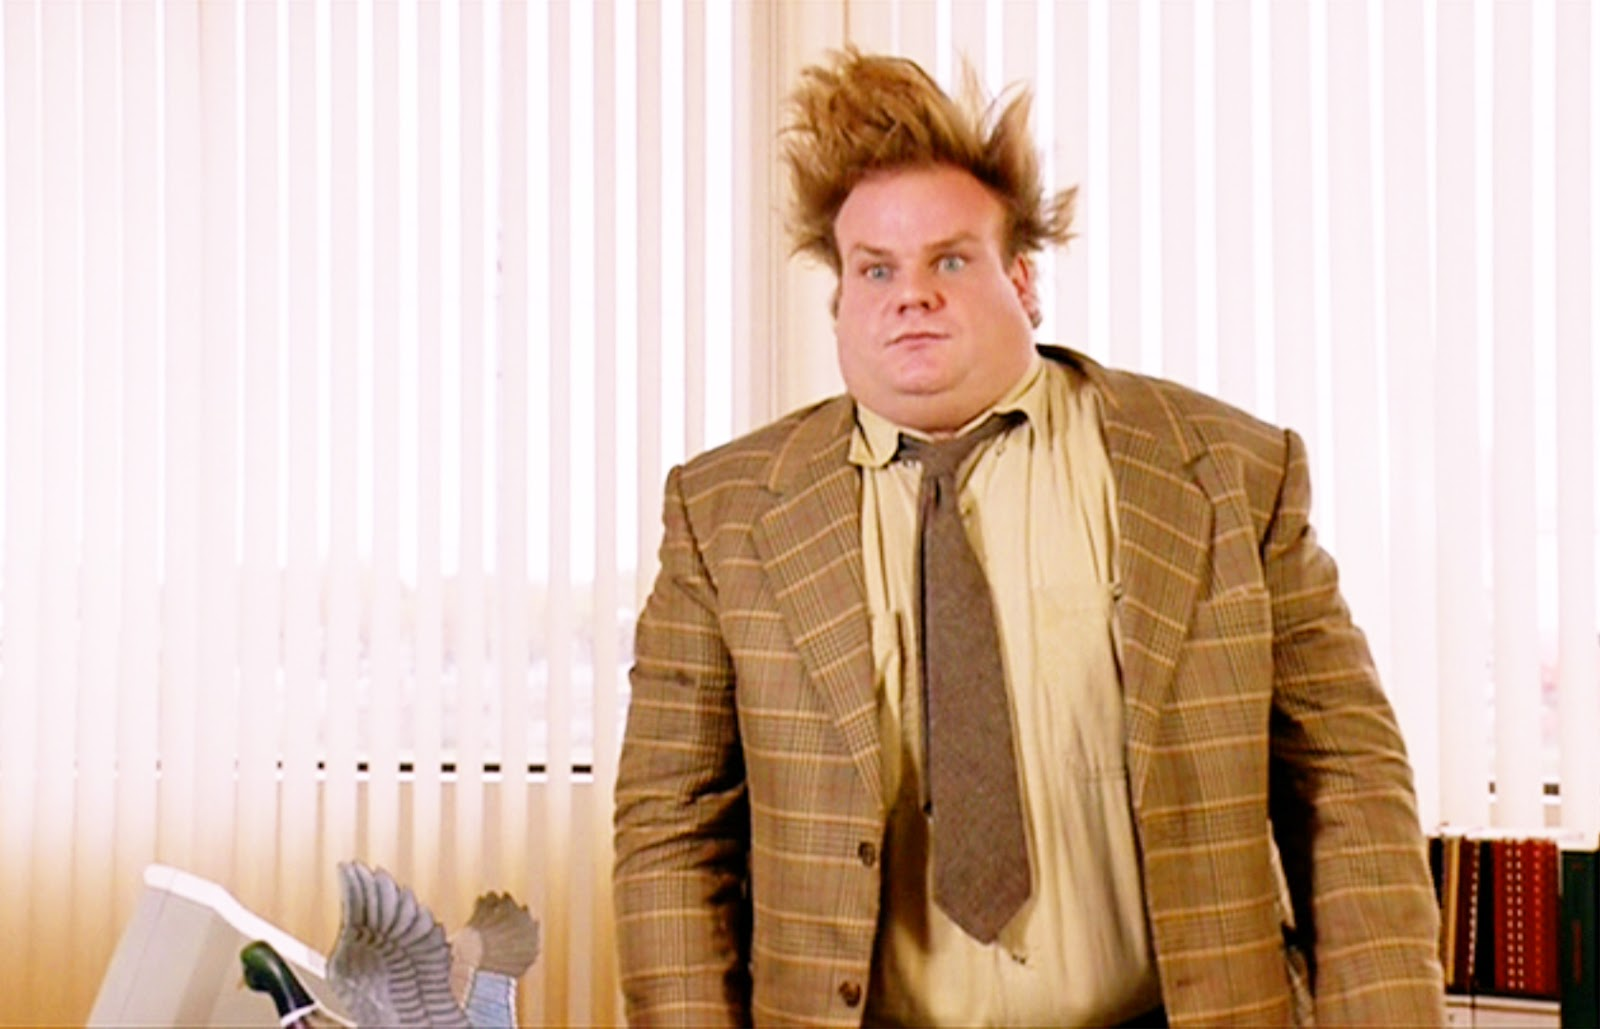 Chris Farley Tommy Boy Quotes: Tommy Boy Chris Farley Quotes. QuotesGram